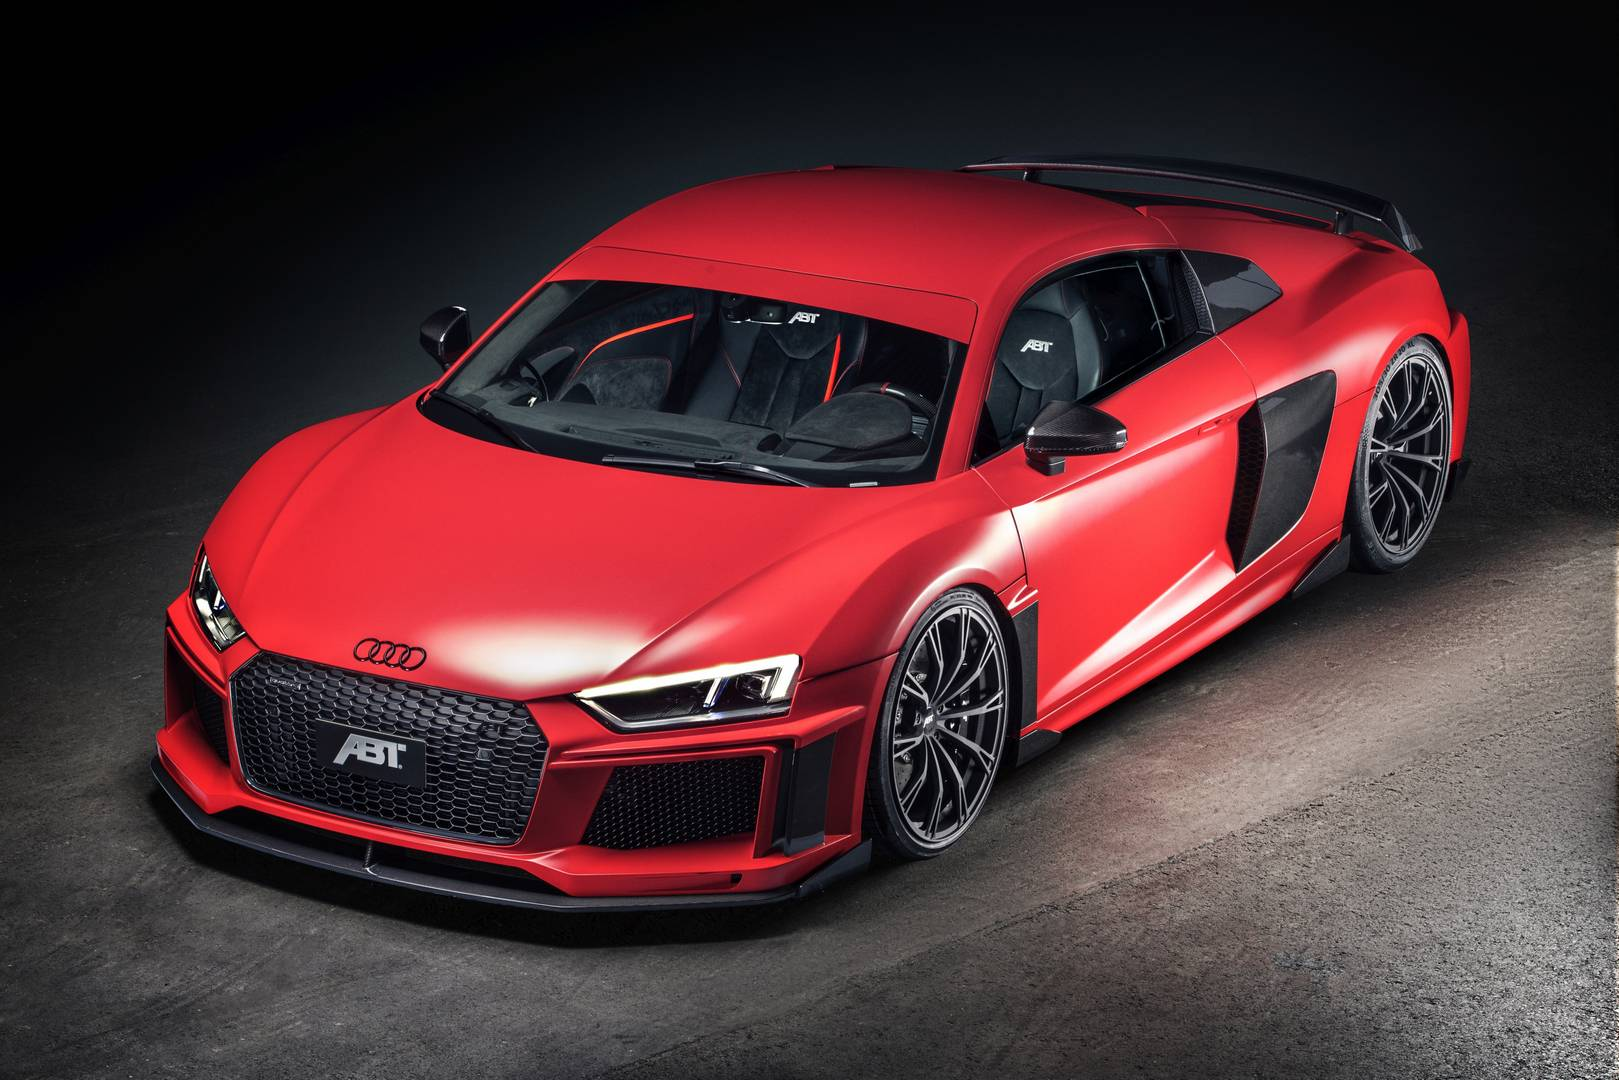 Official 2017 Abt Audi R8 V10 Gtspirit